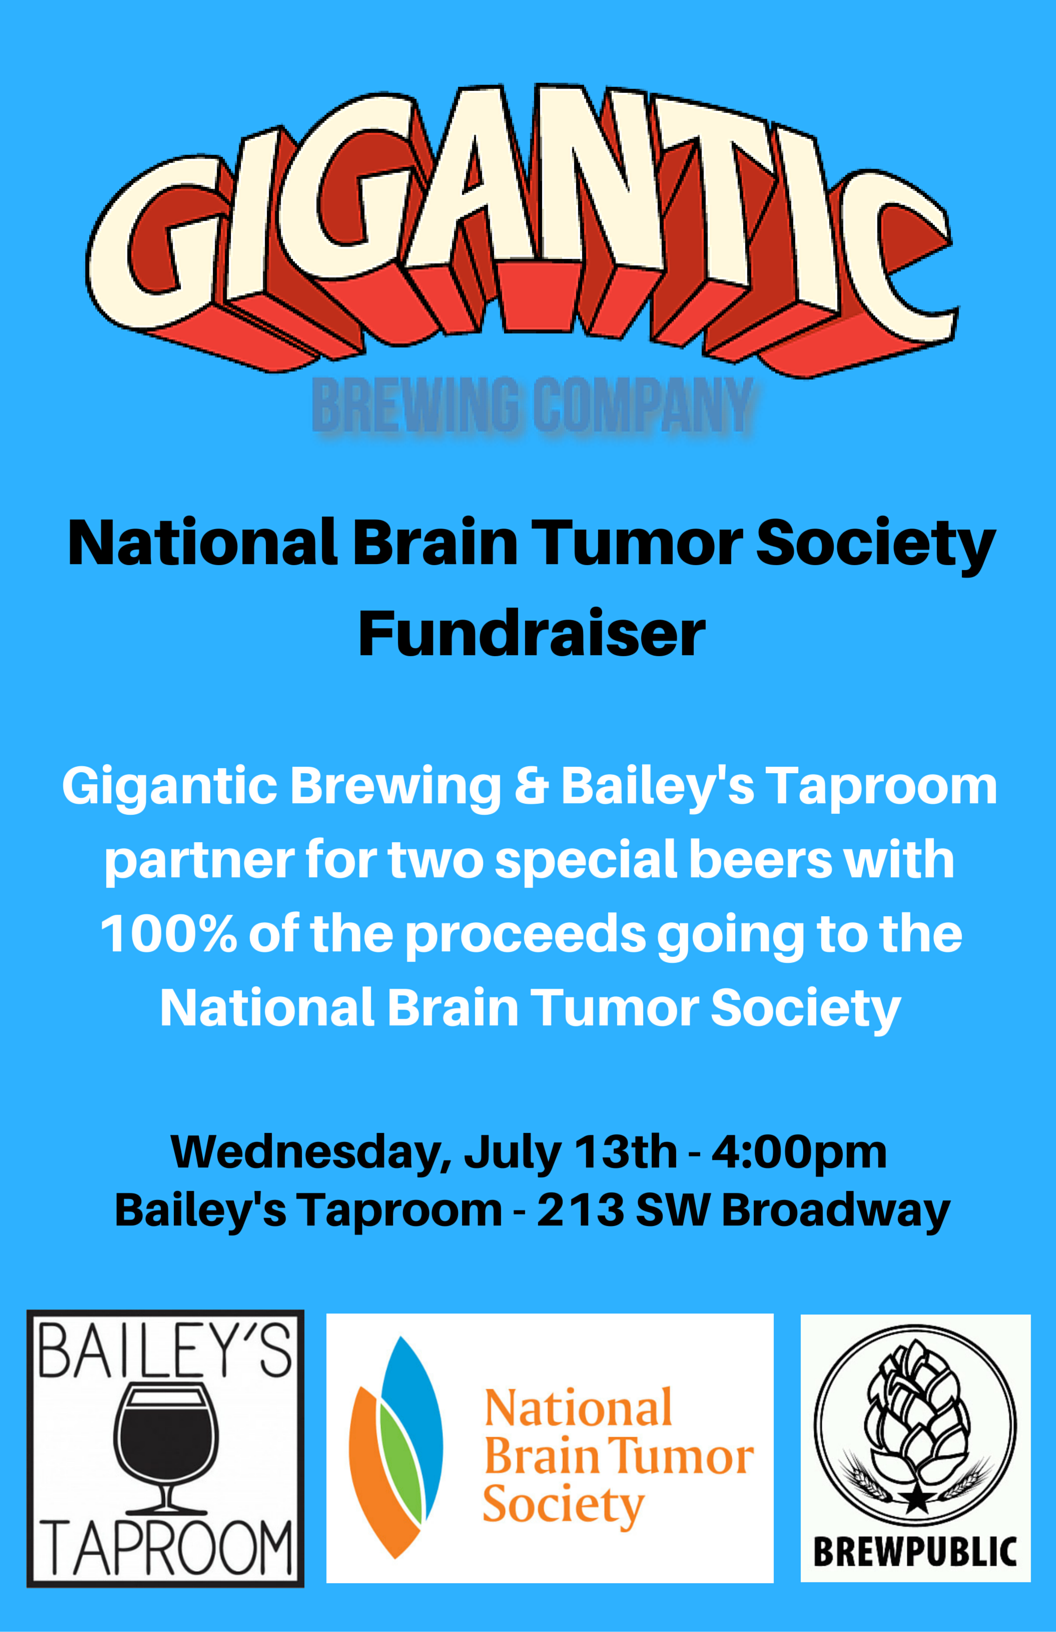 Gigantic Brewing & Bailey's Taproom National Brain Tumor Society Fundraiser